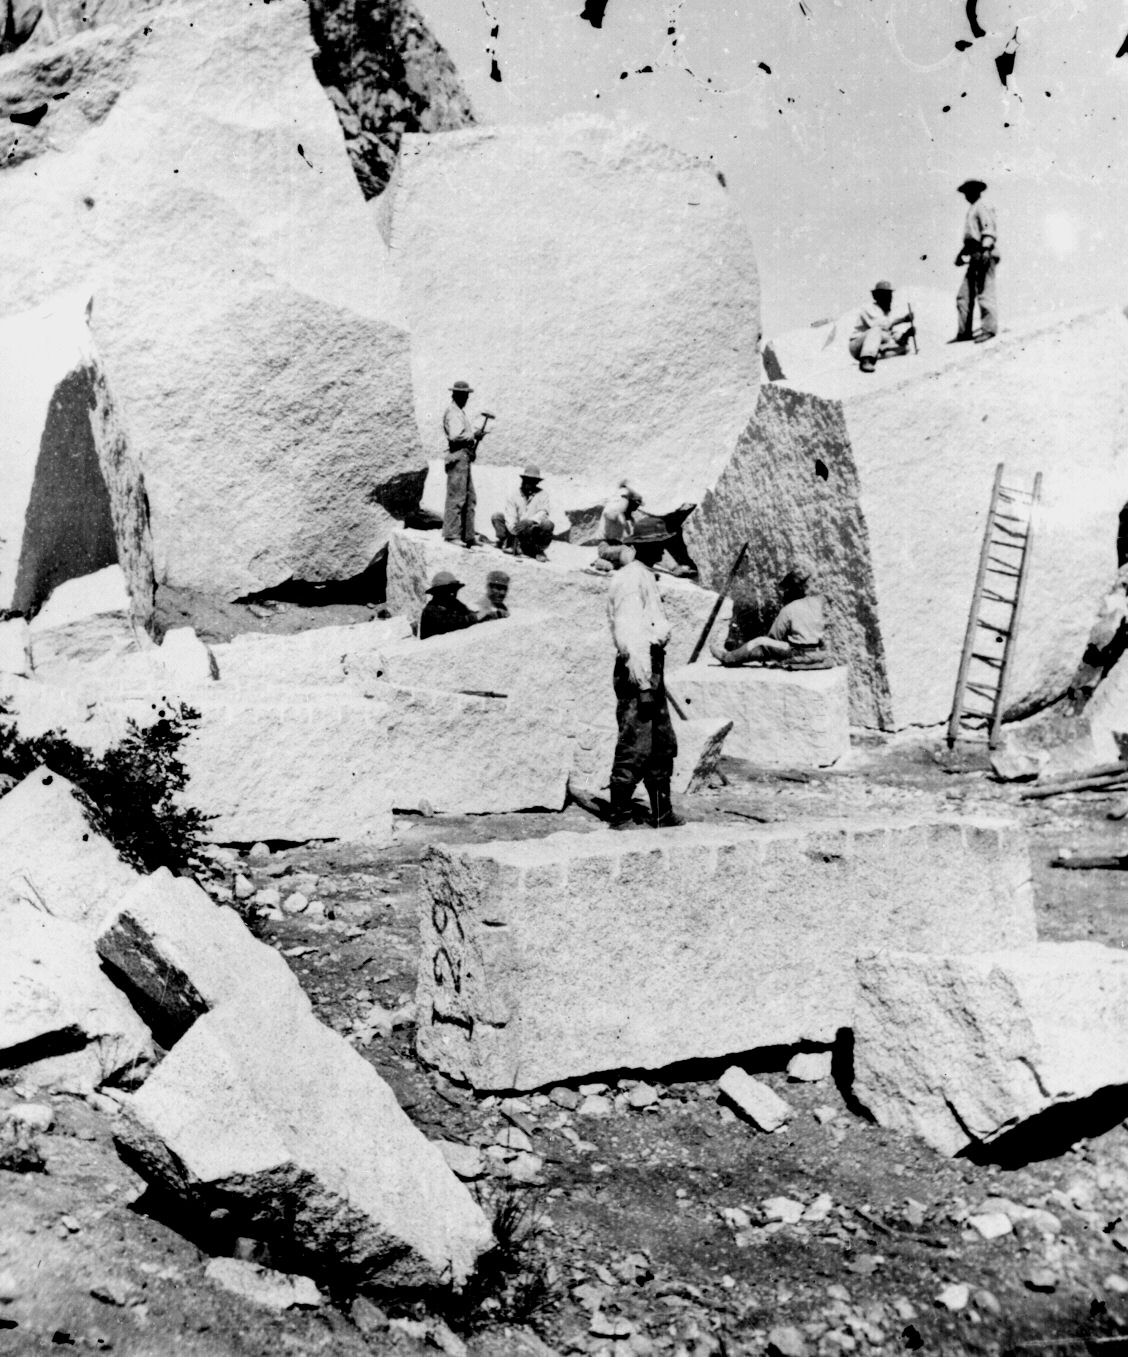 Stone cutters in at Little Cottonwood Canyon carve out granite for temple.  Canyon was 20 miles SW of the temple. Stone first hailed by oxcart then train starting 1871.